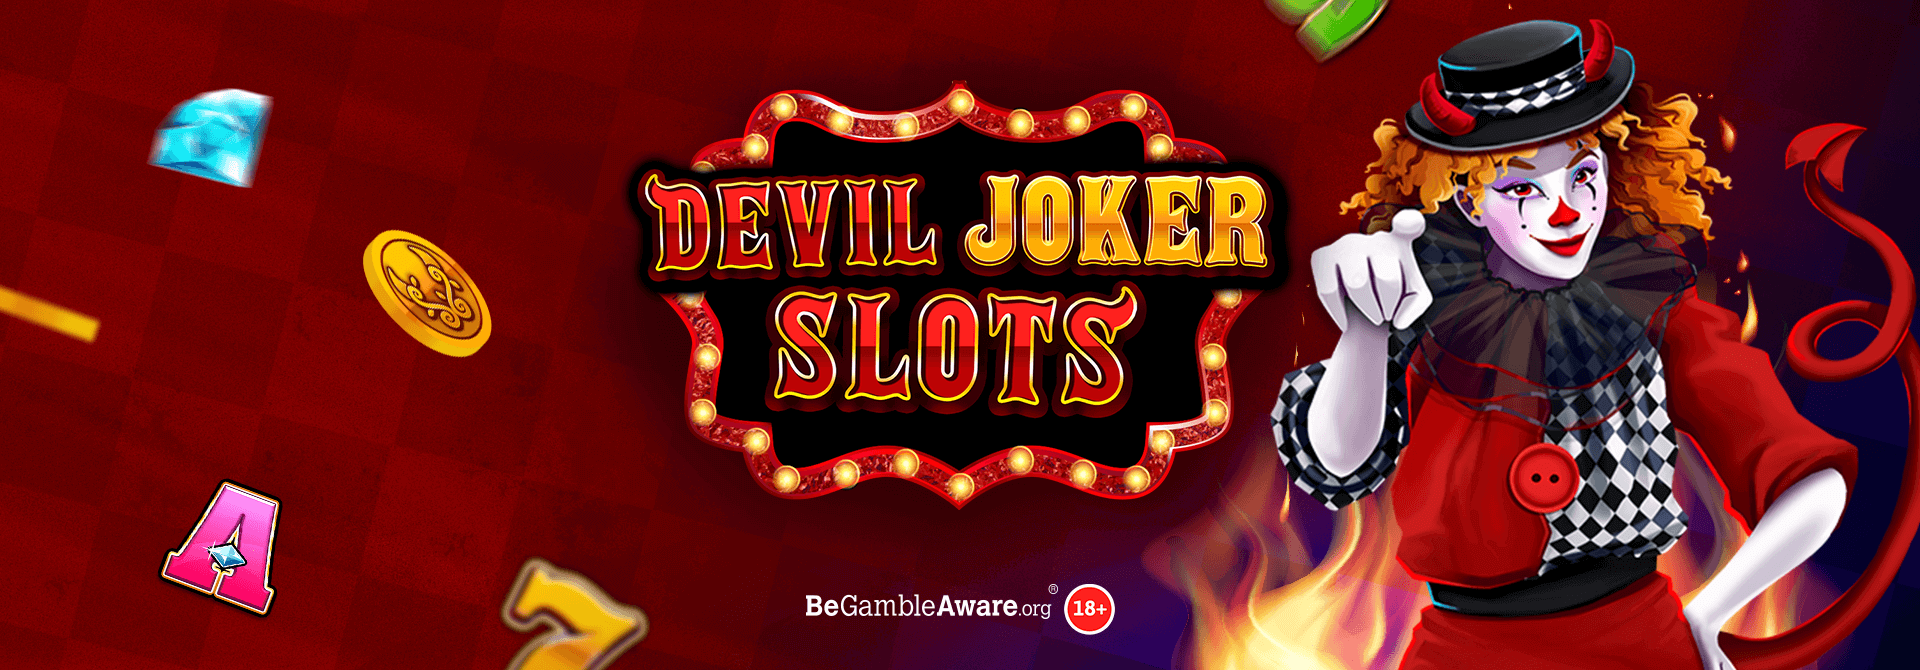 mFortune is burning up with a hot new release: Devil Joker Slots